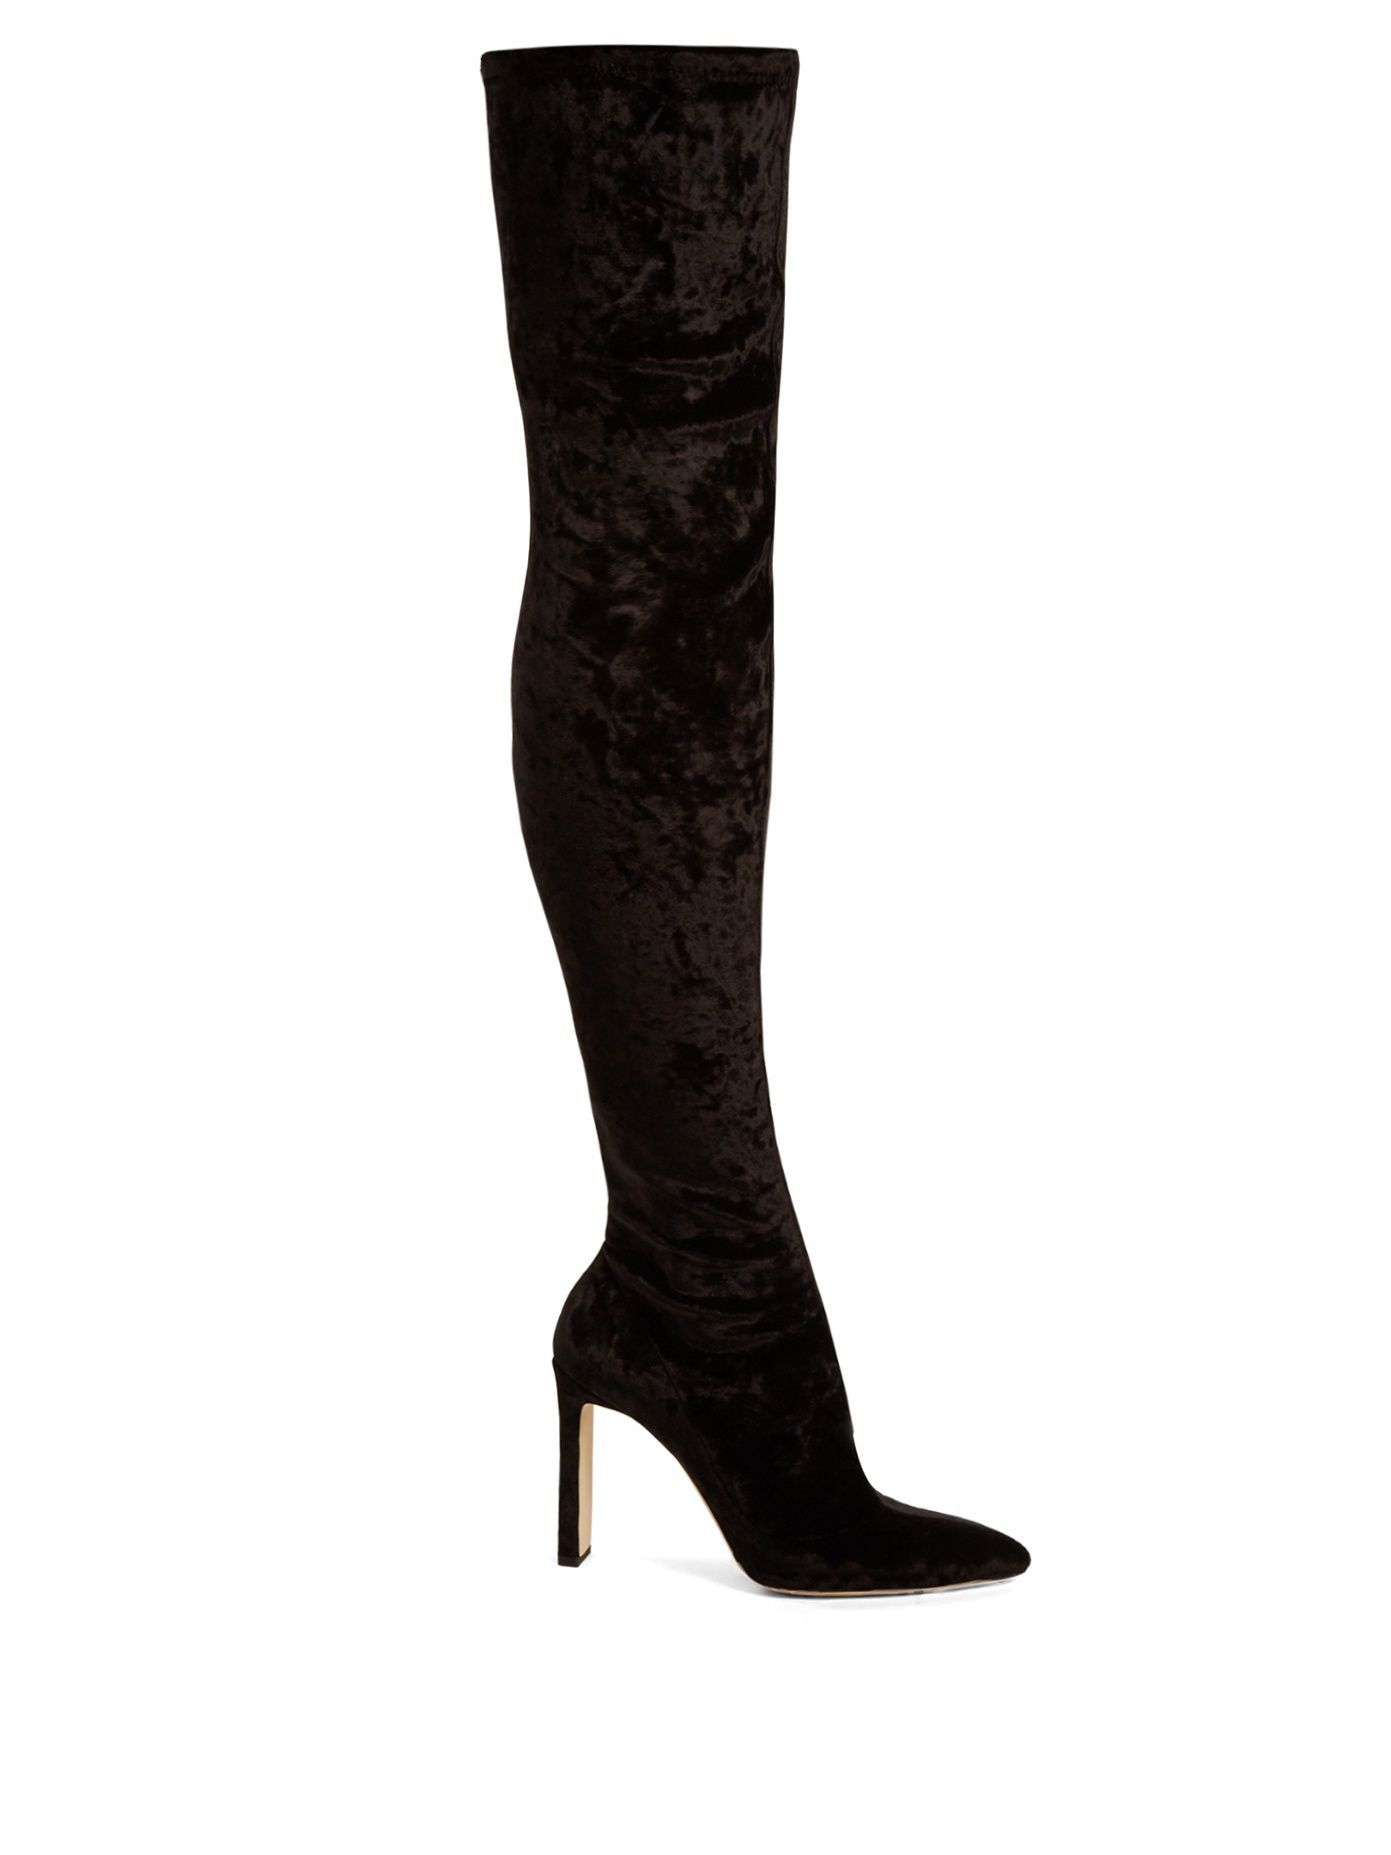 e798314ea48 17 Over-The-Knee Boots To Buy